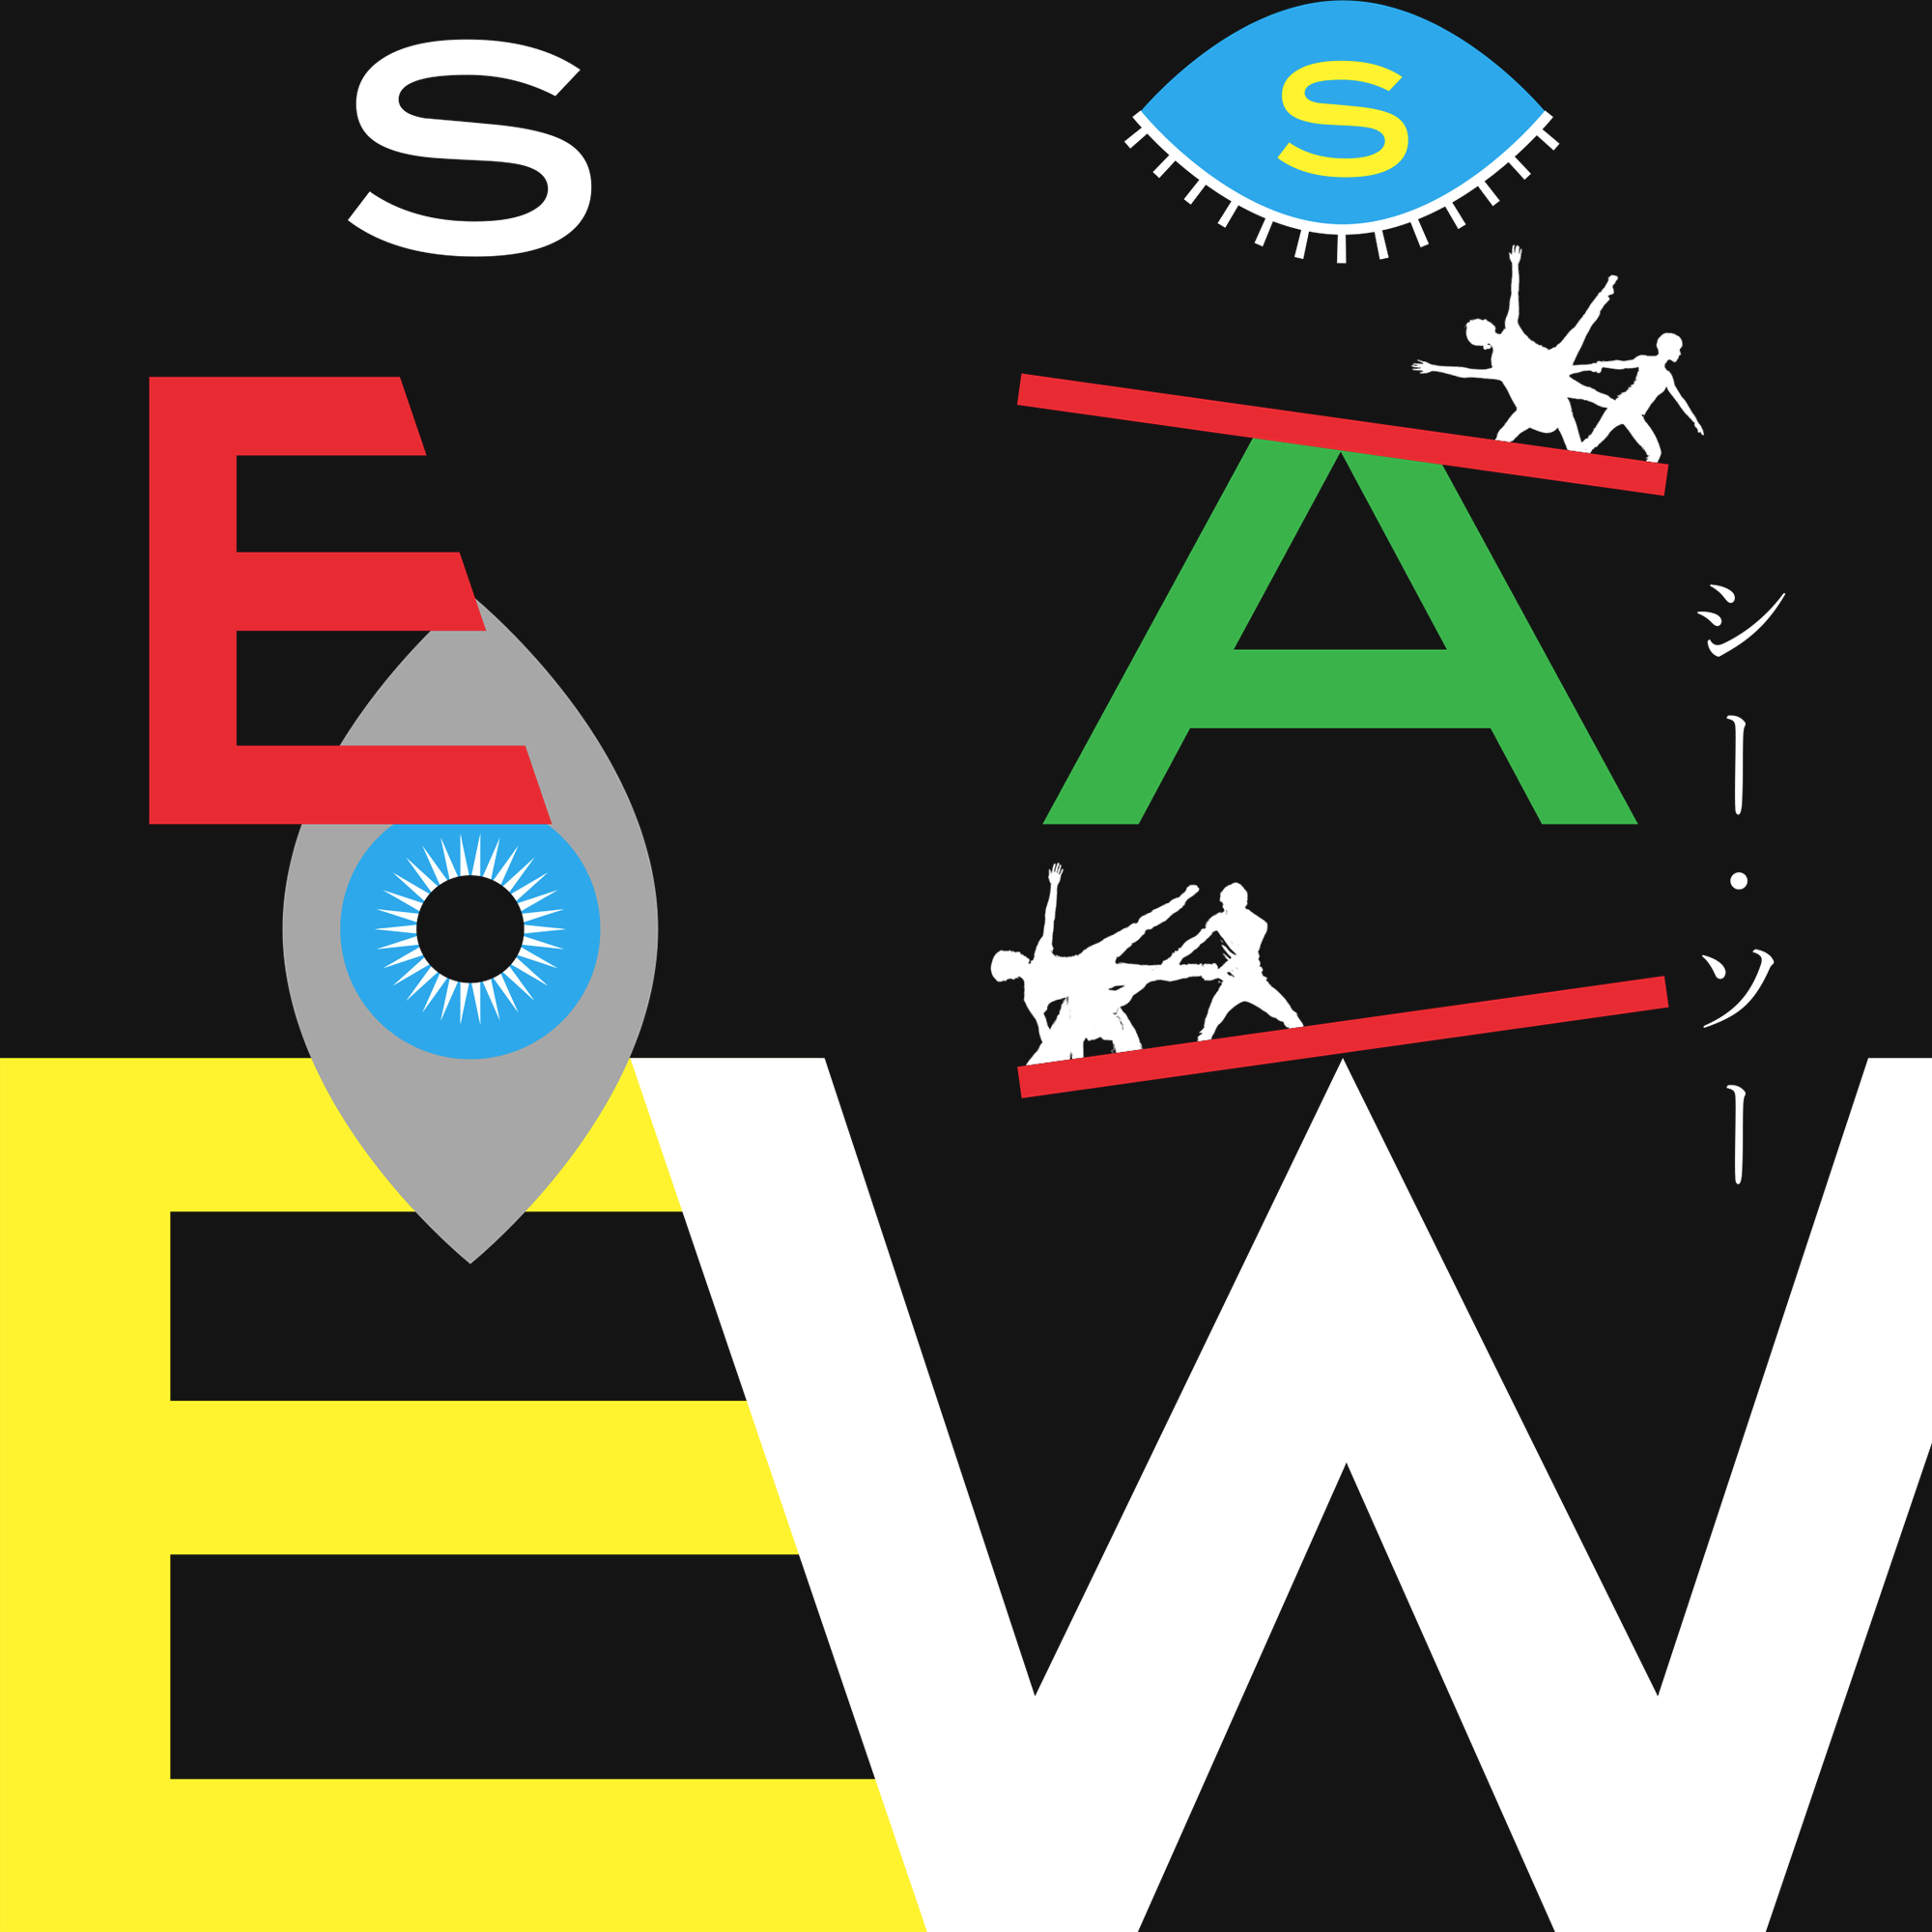 SEE SAW(シー・ソー)